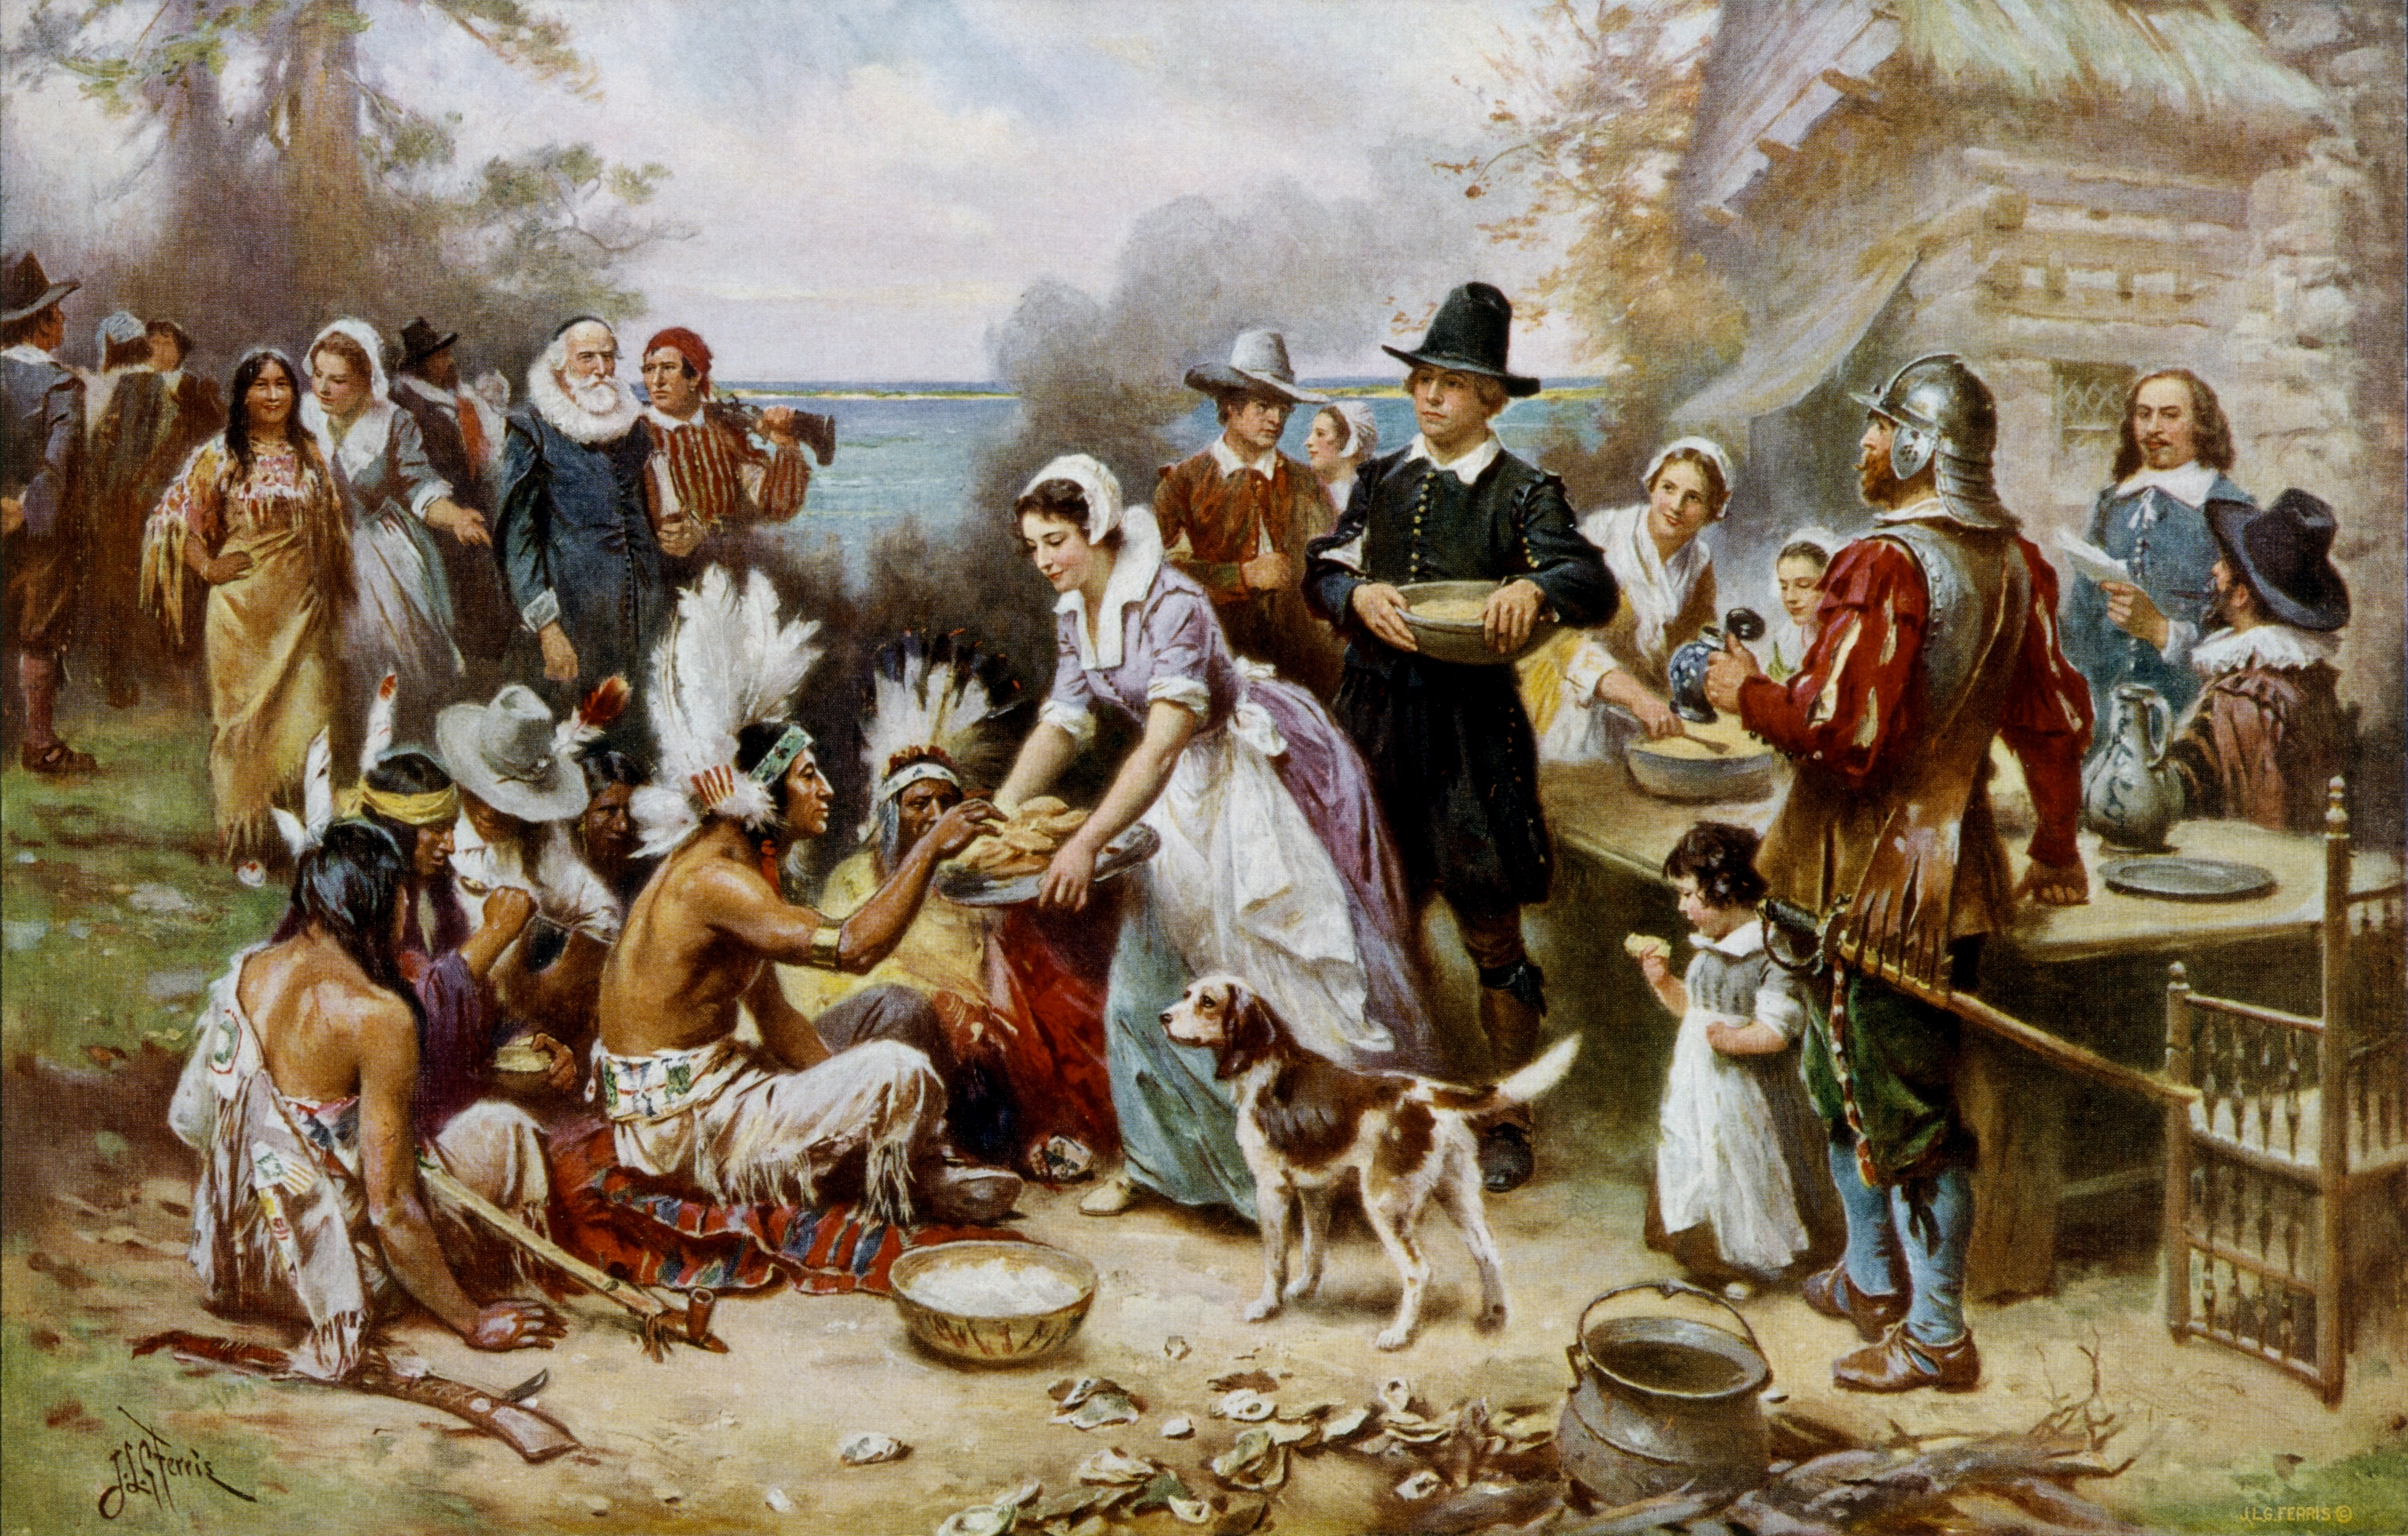 http://upload.wikimedia.org/wikipedia/commons/6/6e/The_First_Thanksgiving_cph.3g04961.jpg